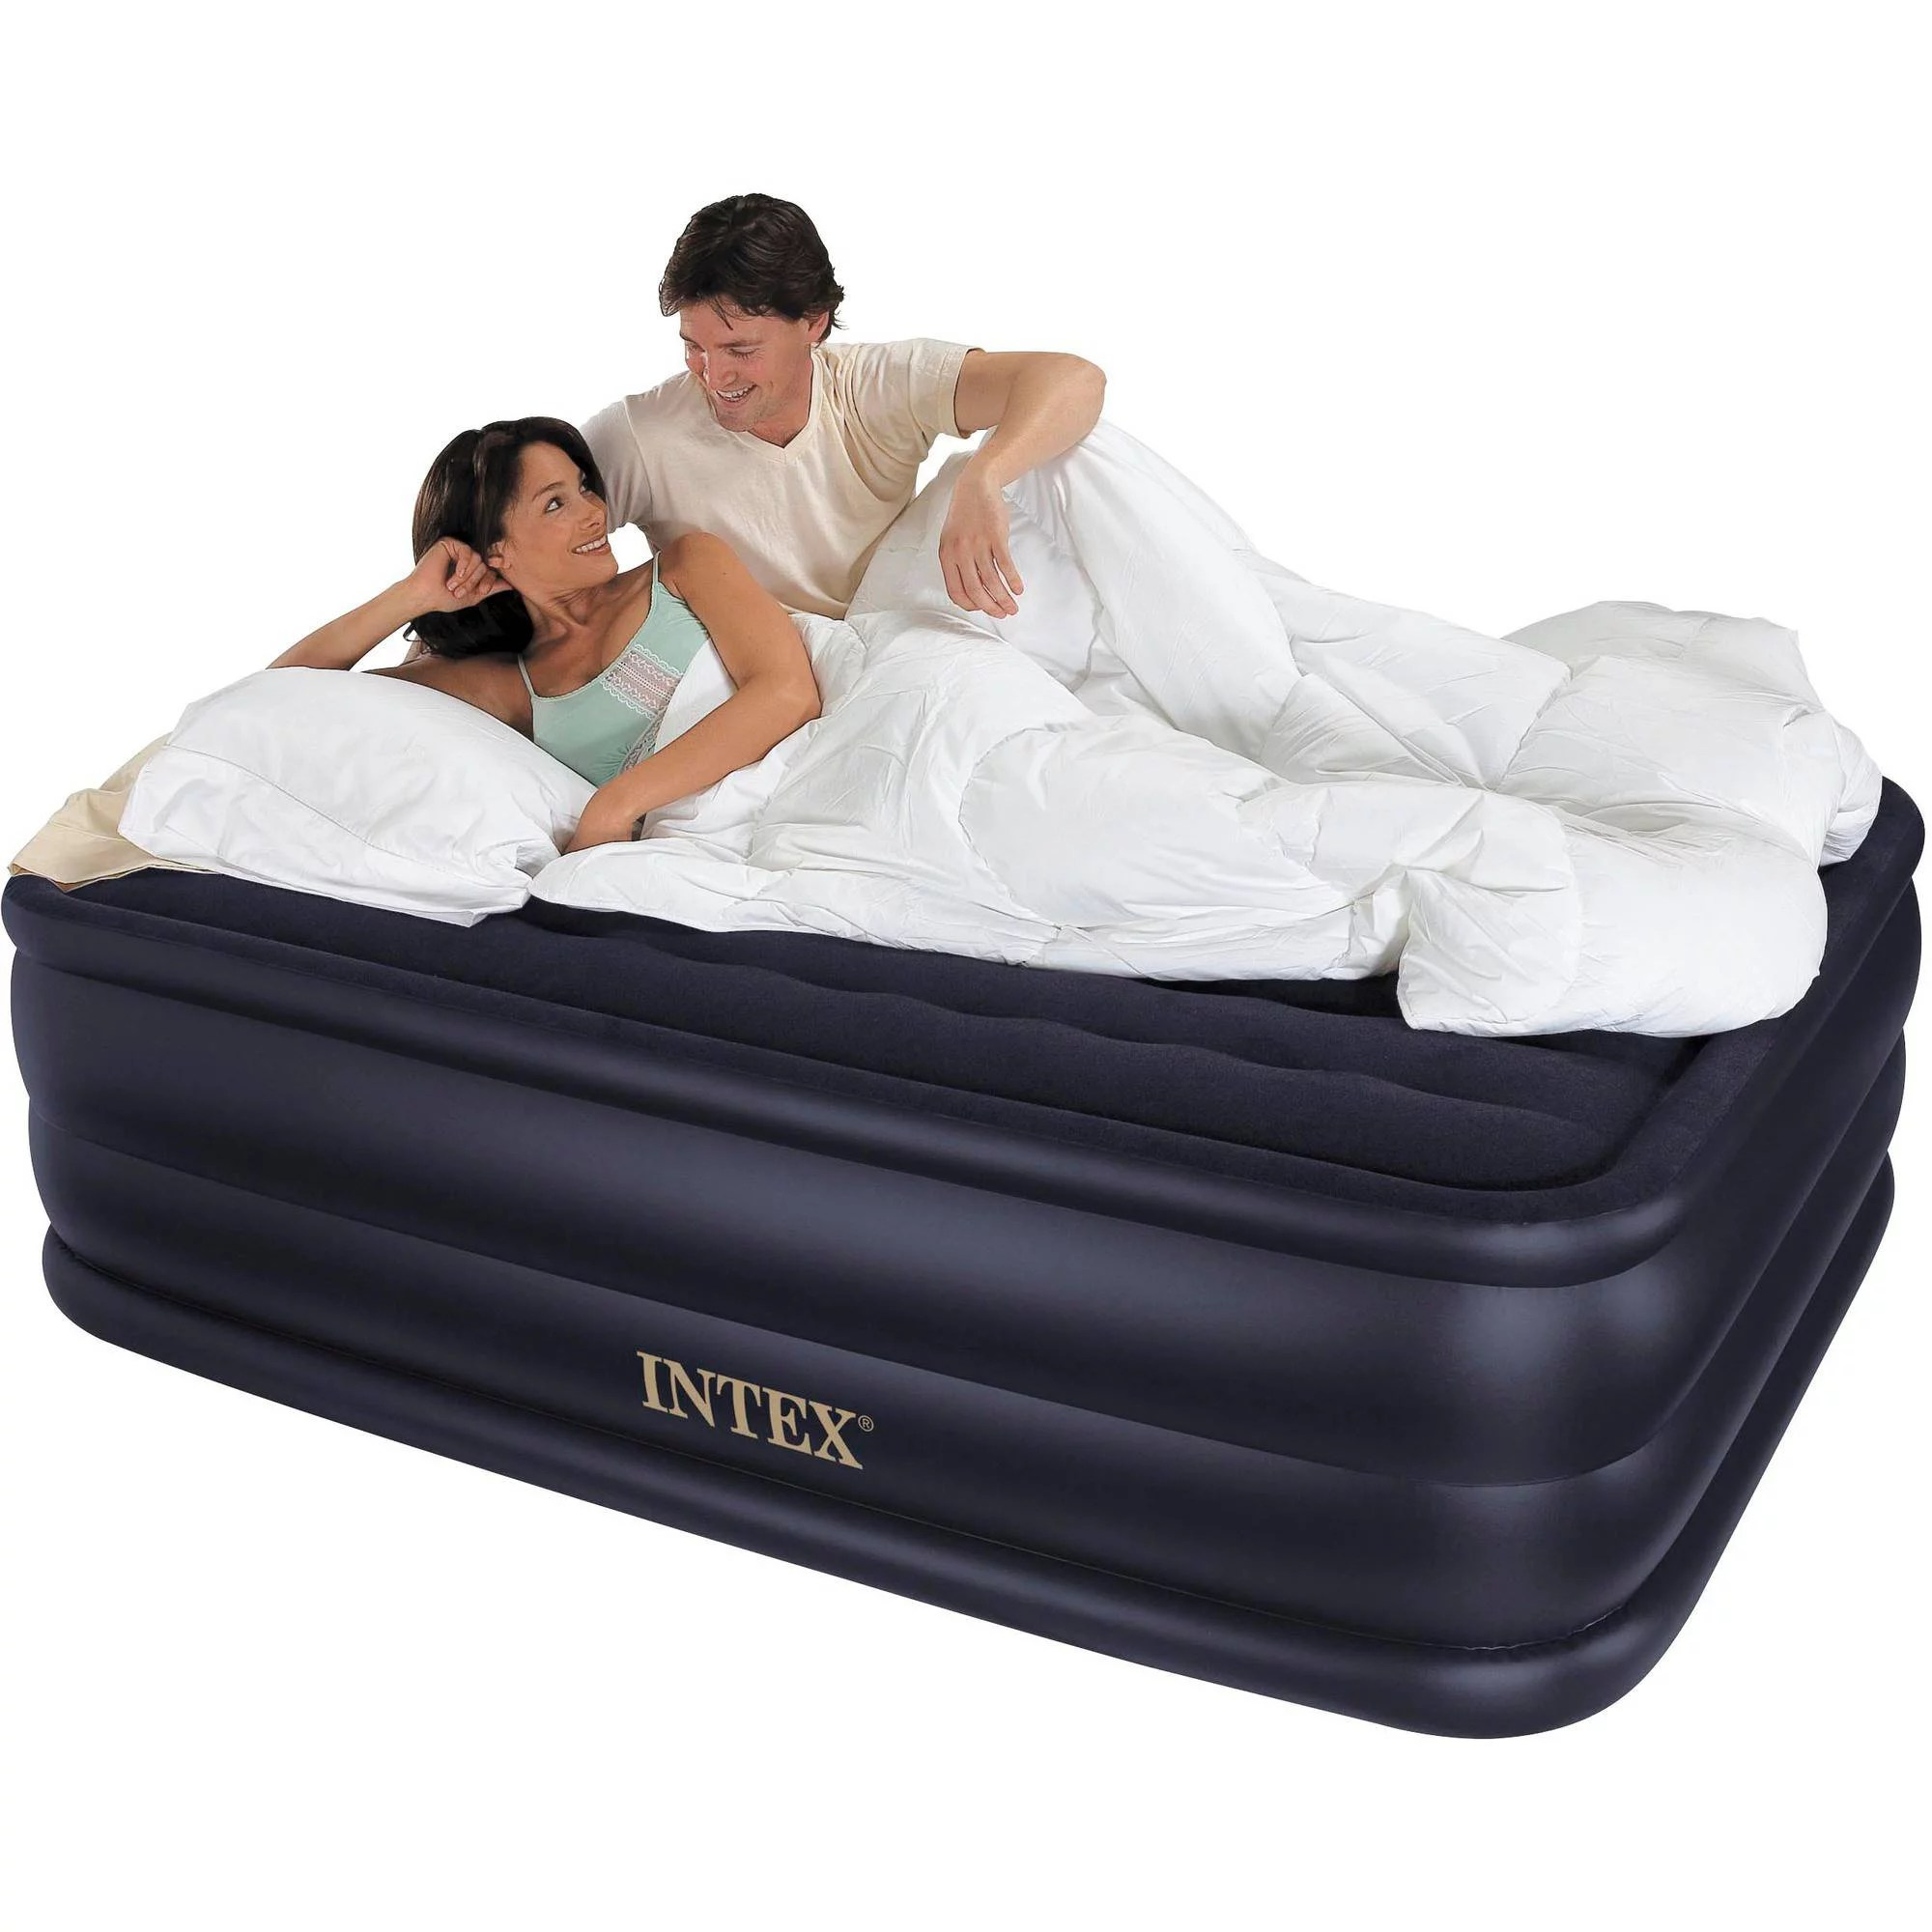 King Size Air Bed Camping Intex Queen 22